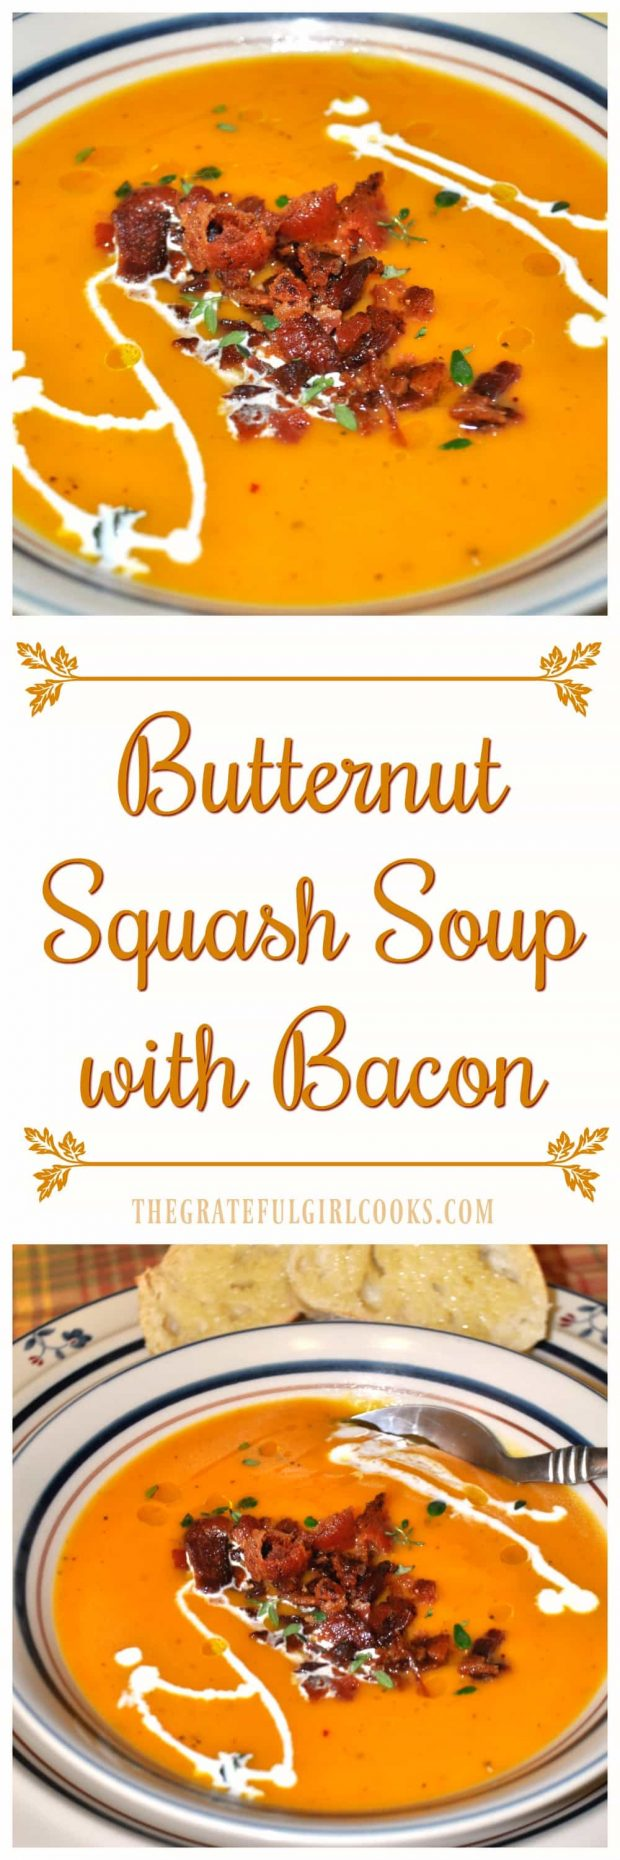 Butternut Squash Soup with Bacon / The Grateful Girl Cooks!